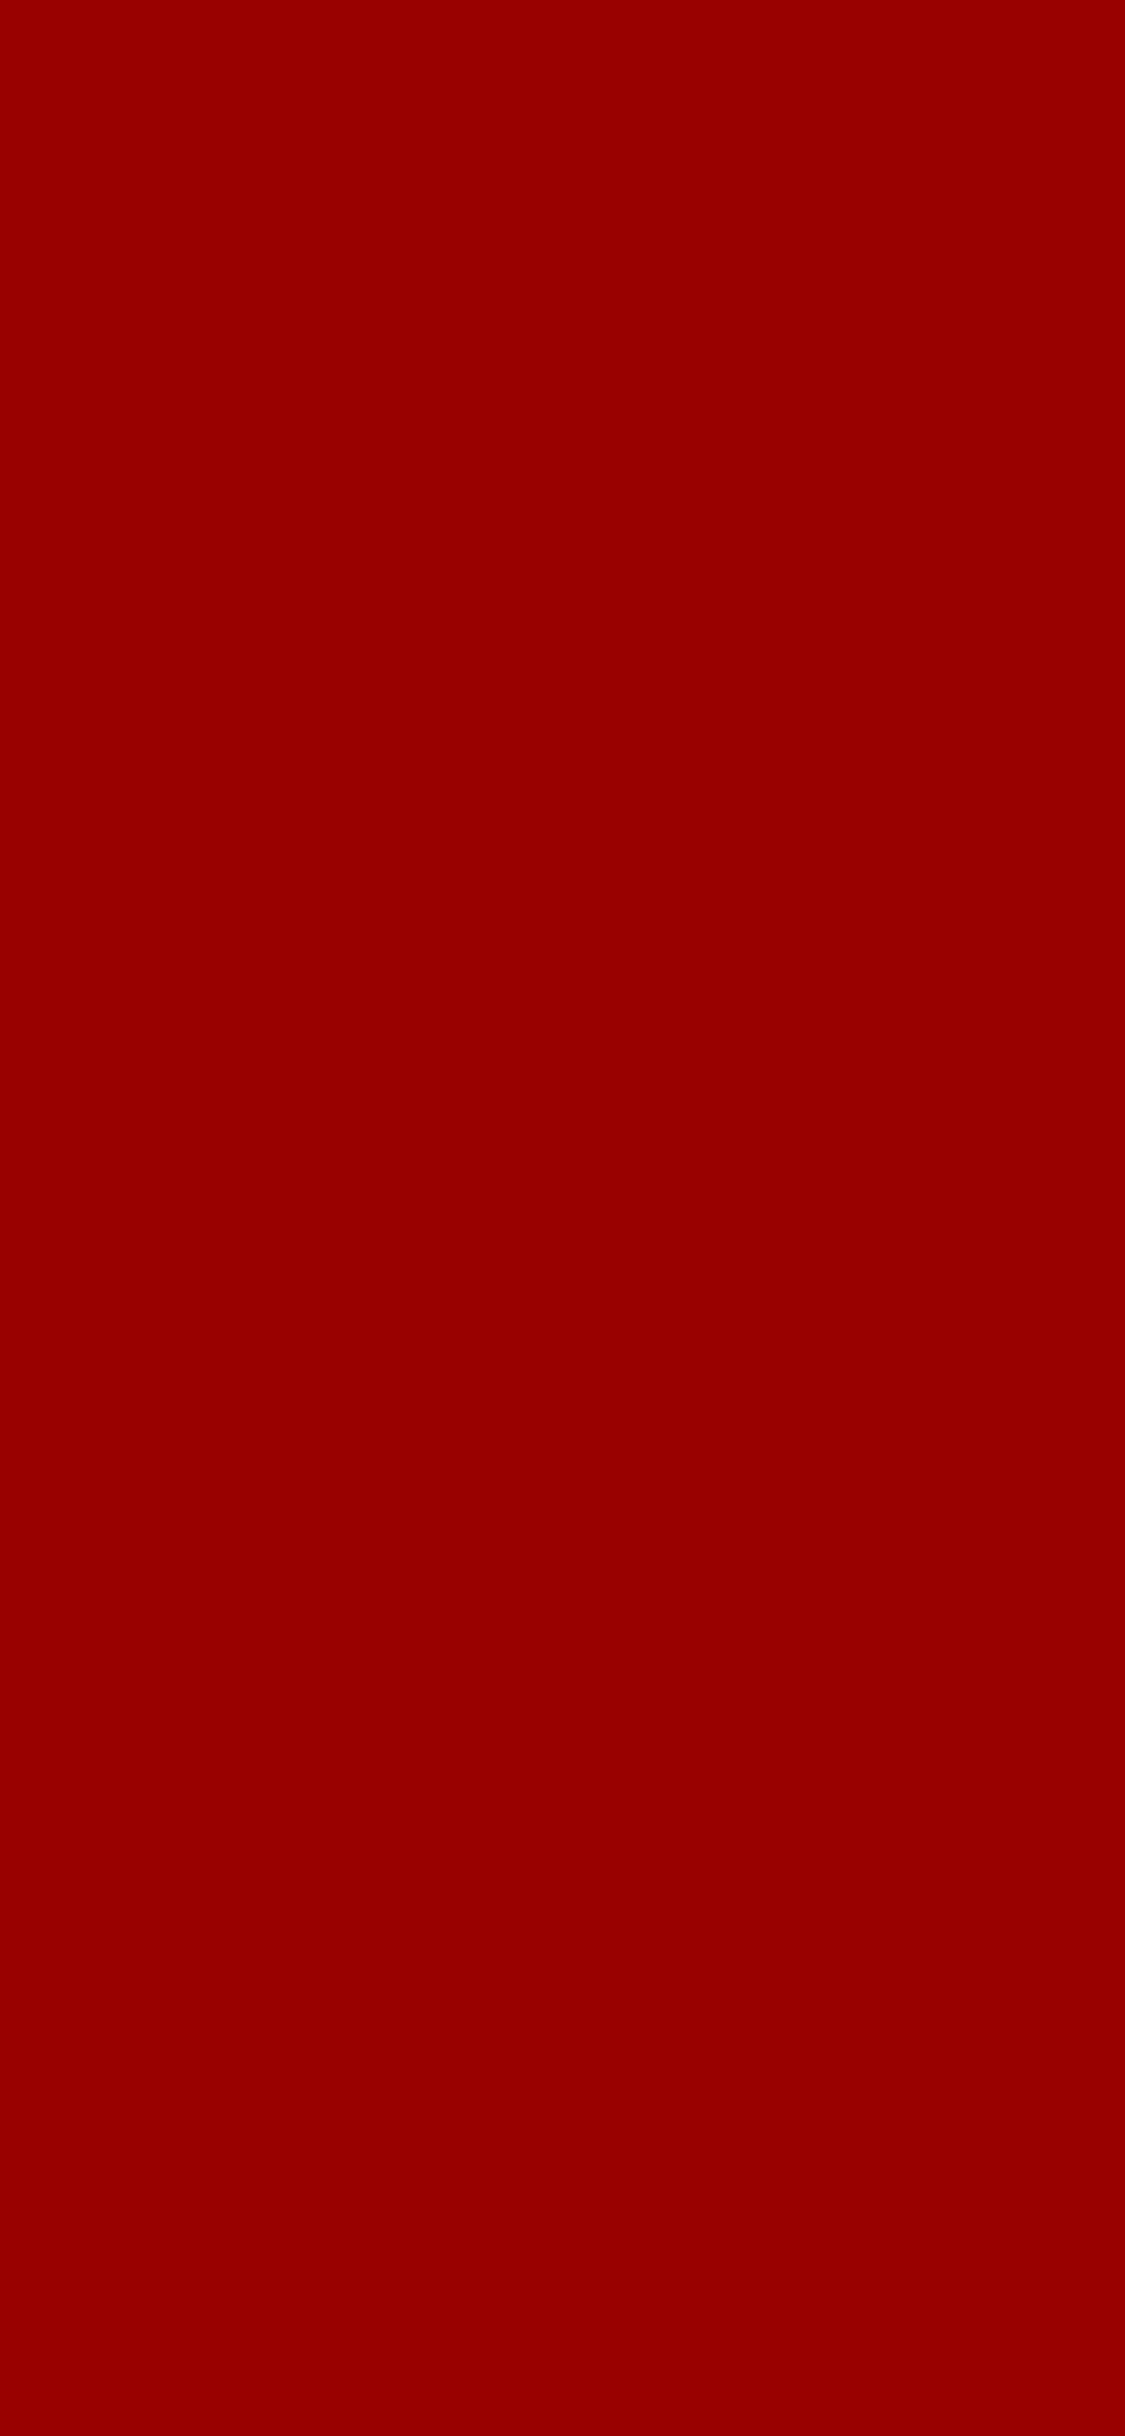 1125x2436 USC Cardinal Solid Color Background